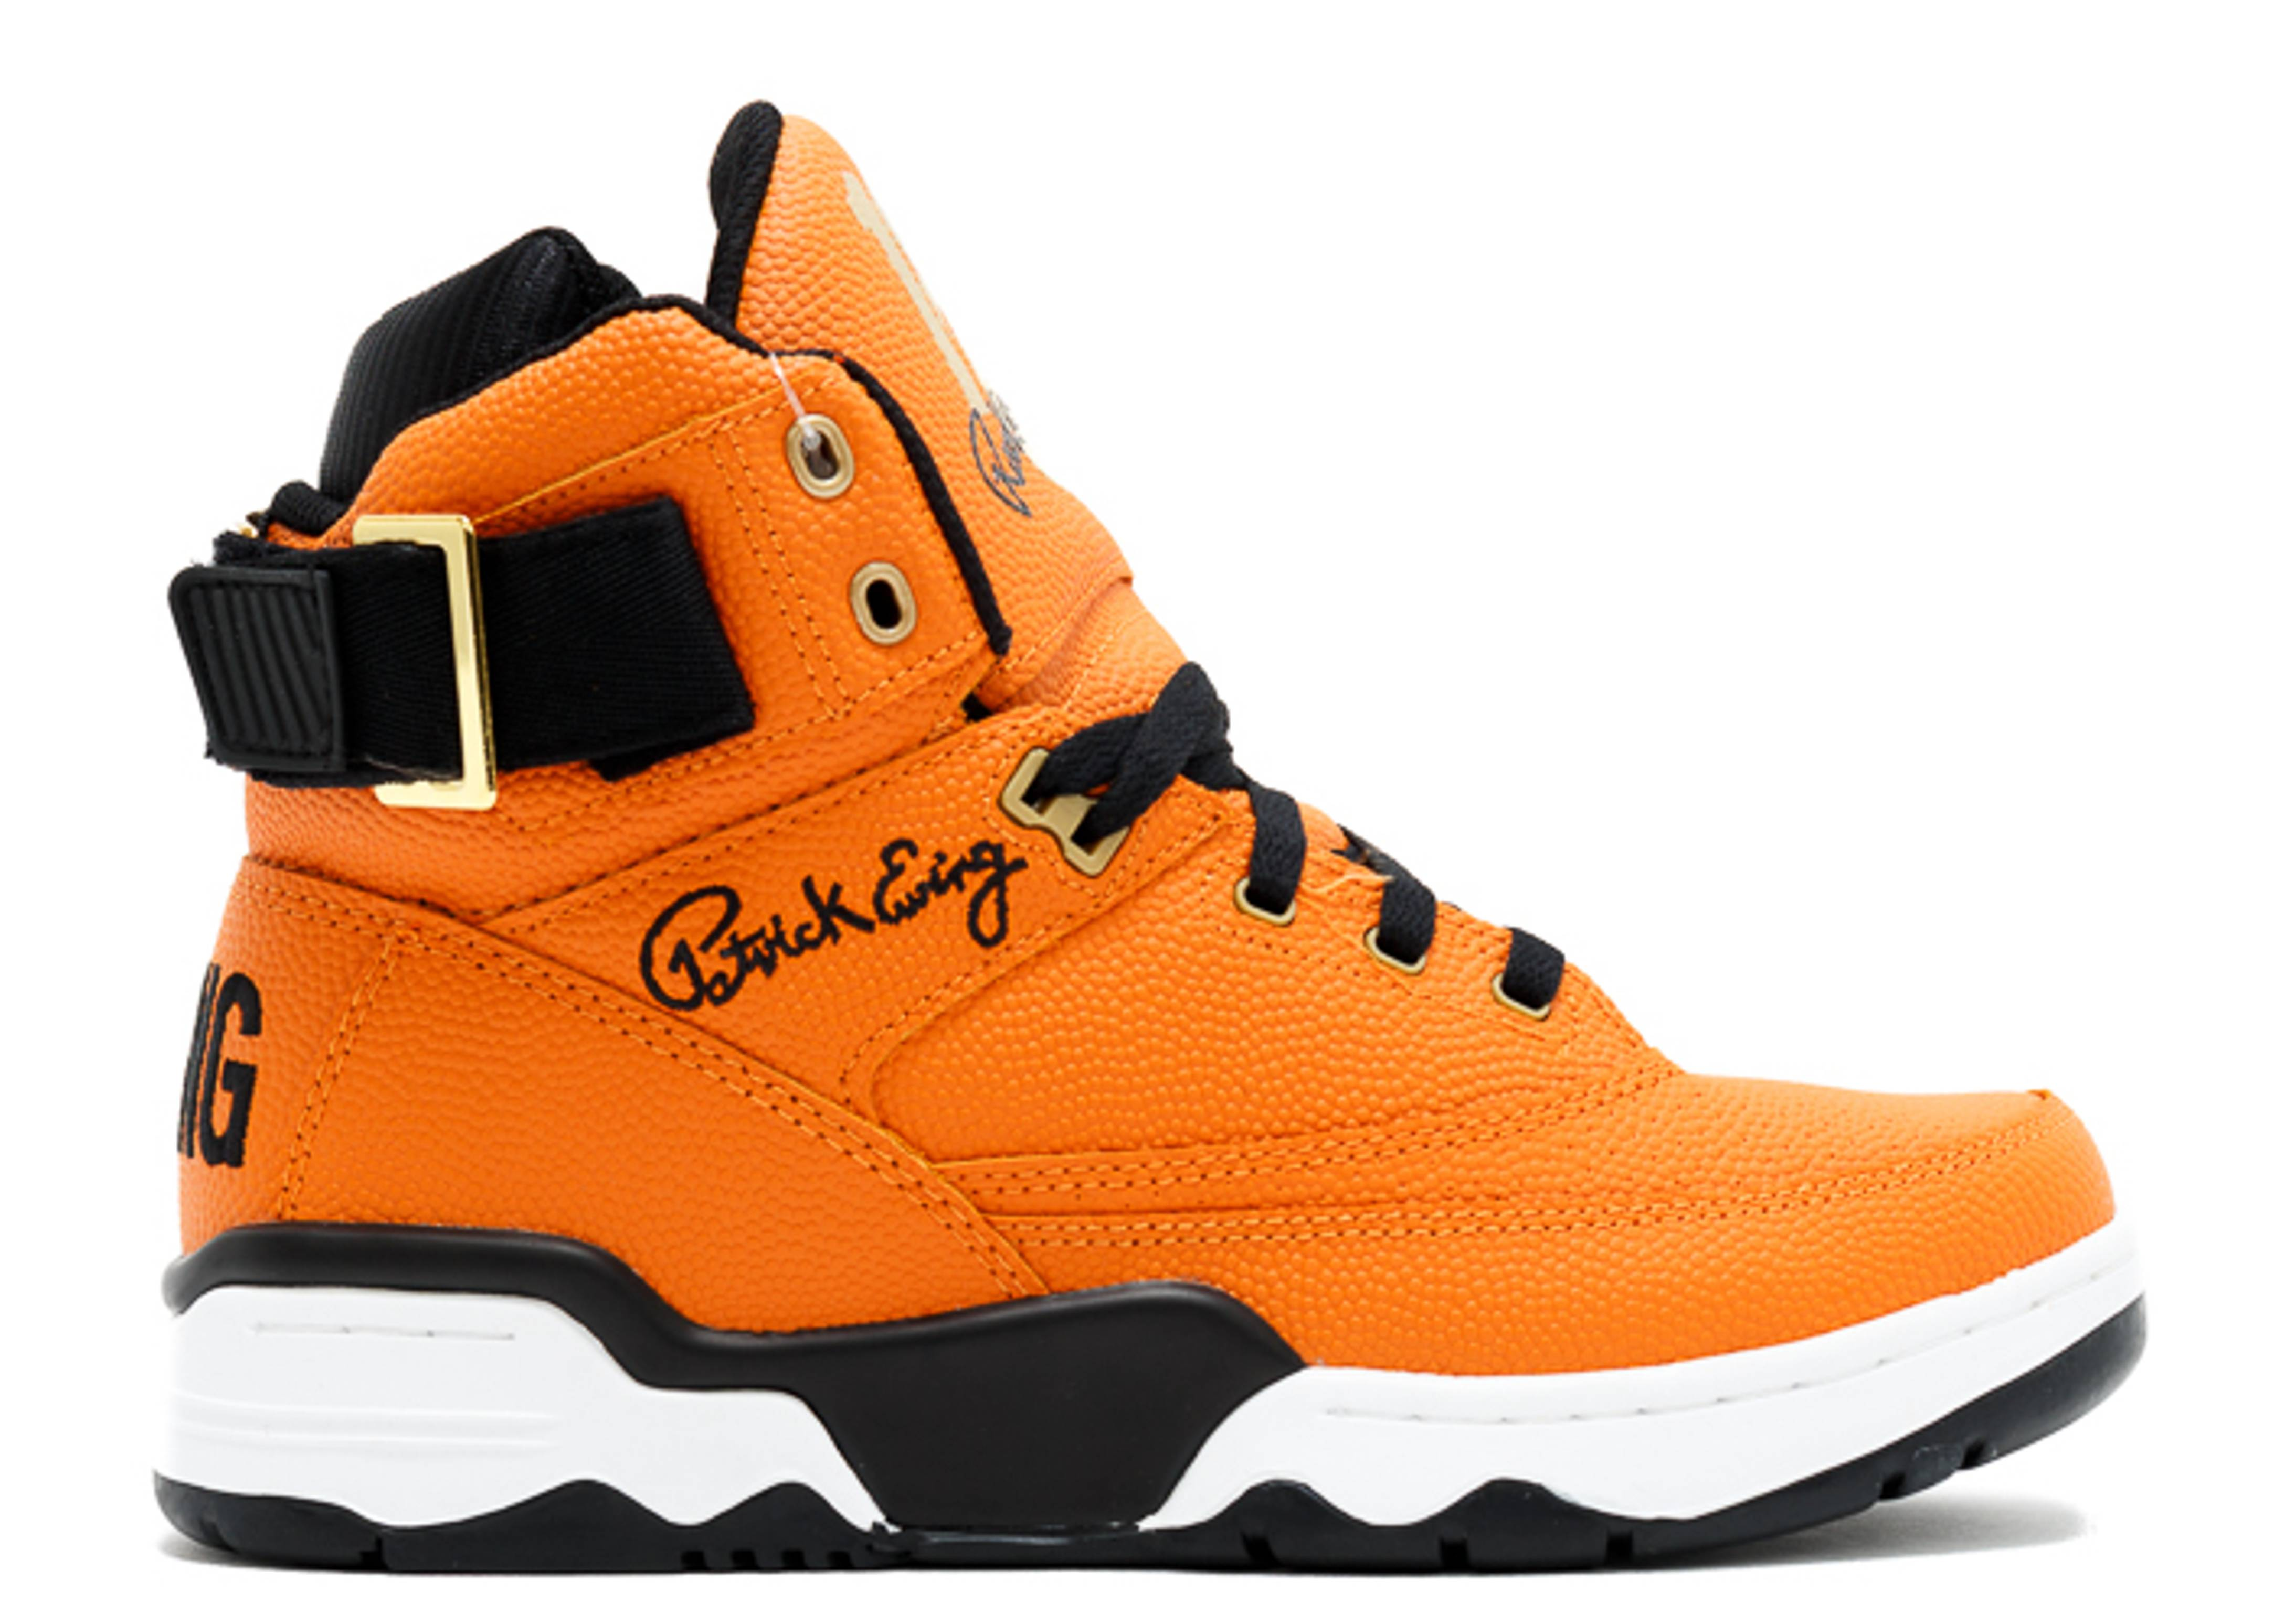 284847f5ecb12 Patrick Ewing Shoes - Men s 33 Hi   More High Tops   Flight Club